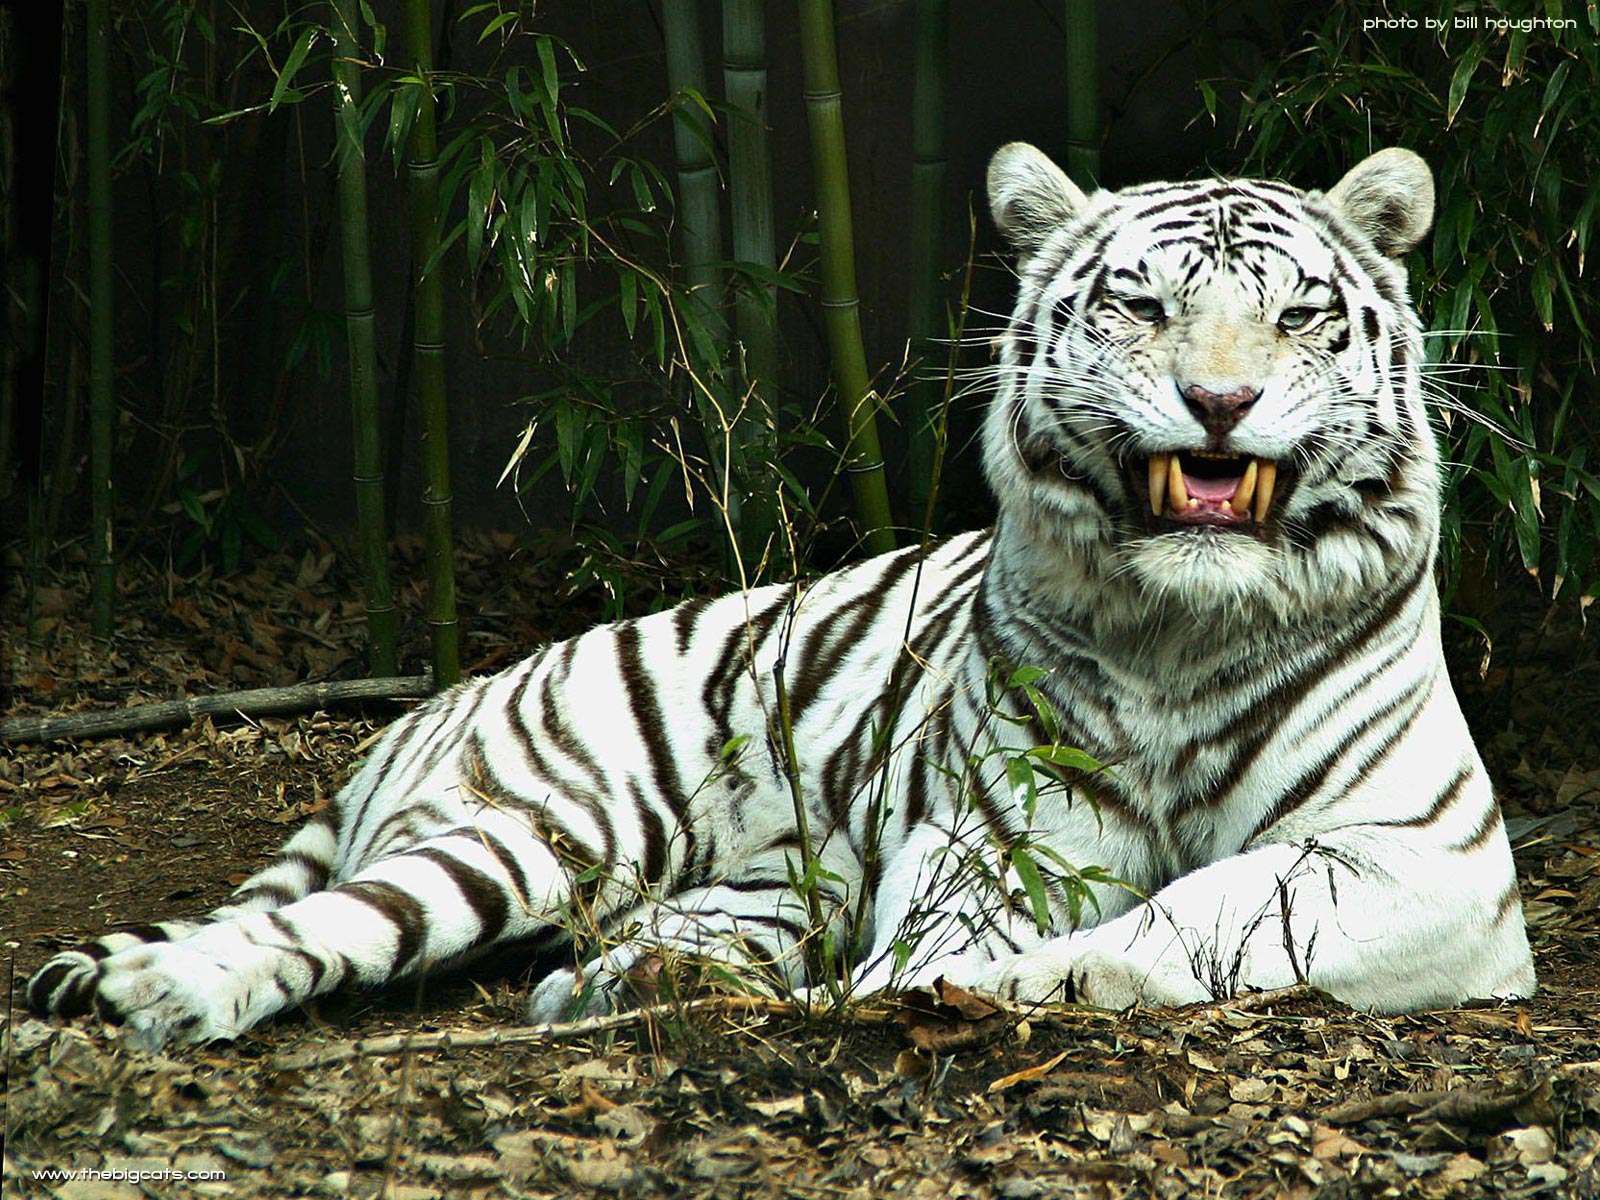 https://3.bp.blogspot.com/-GeKxIoW_lYA/Tv7yflnIZII/AAAAAAAAAdg/ygMkrtcxXKs/s1600/white-tigar-pc-wallpaper-ouradda.jpg